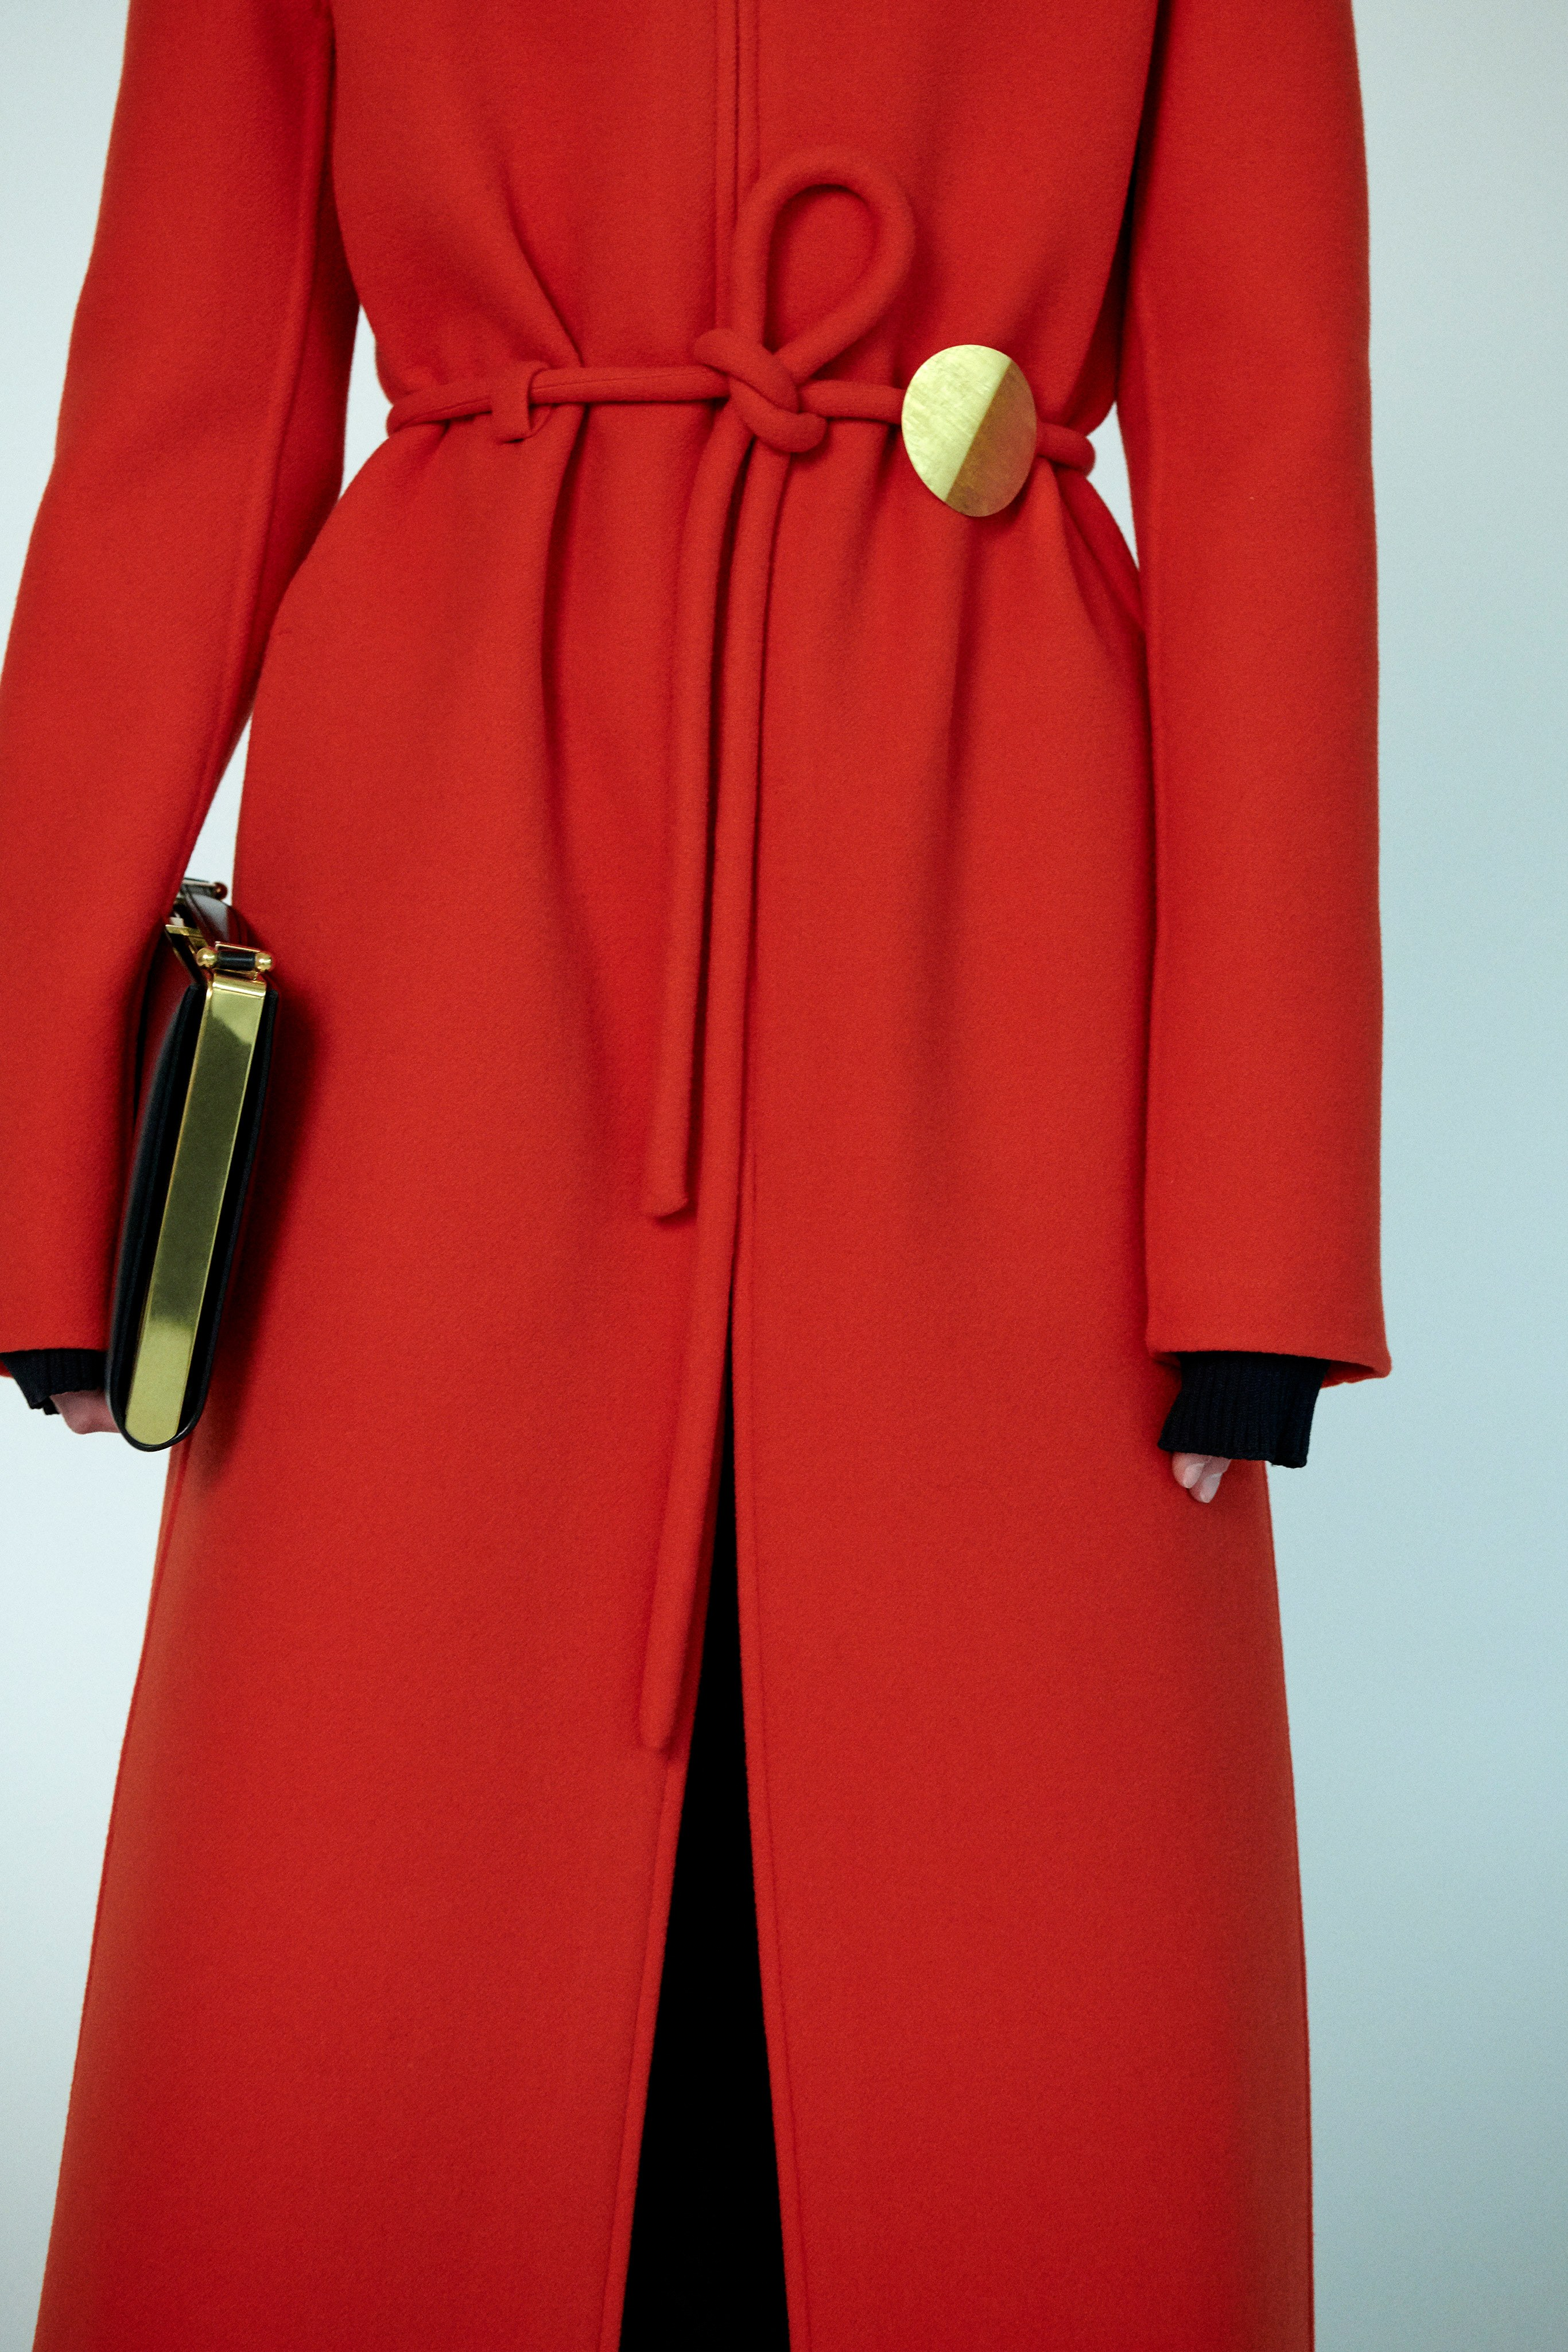 Jil Sander Pre fall 2020 Lookbook trends runway coverage Ready To Wear Vogue red coat